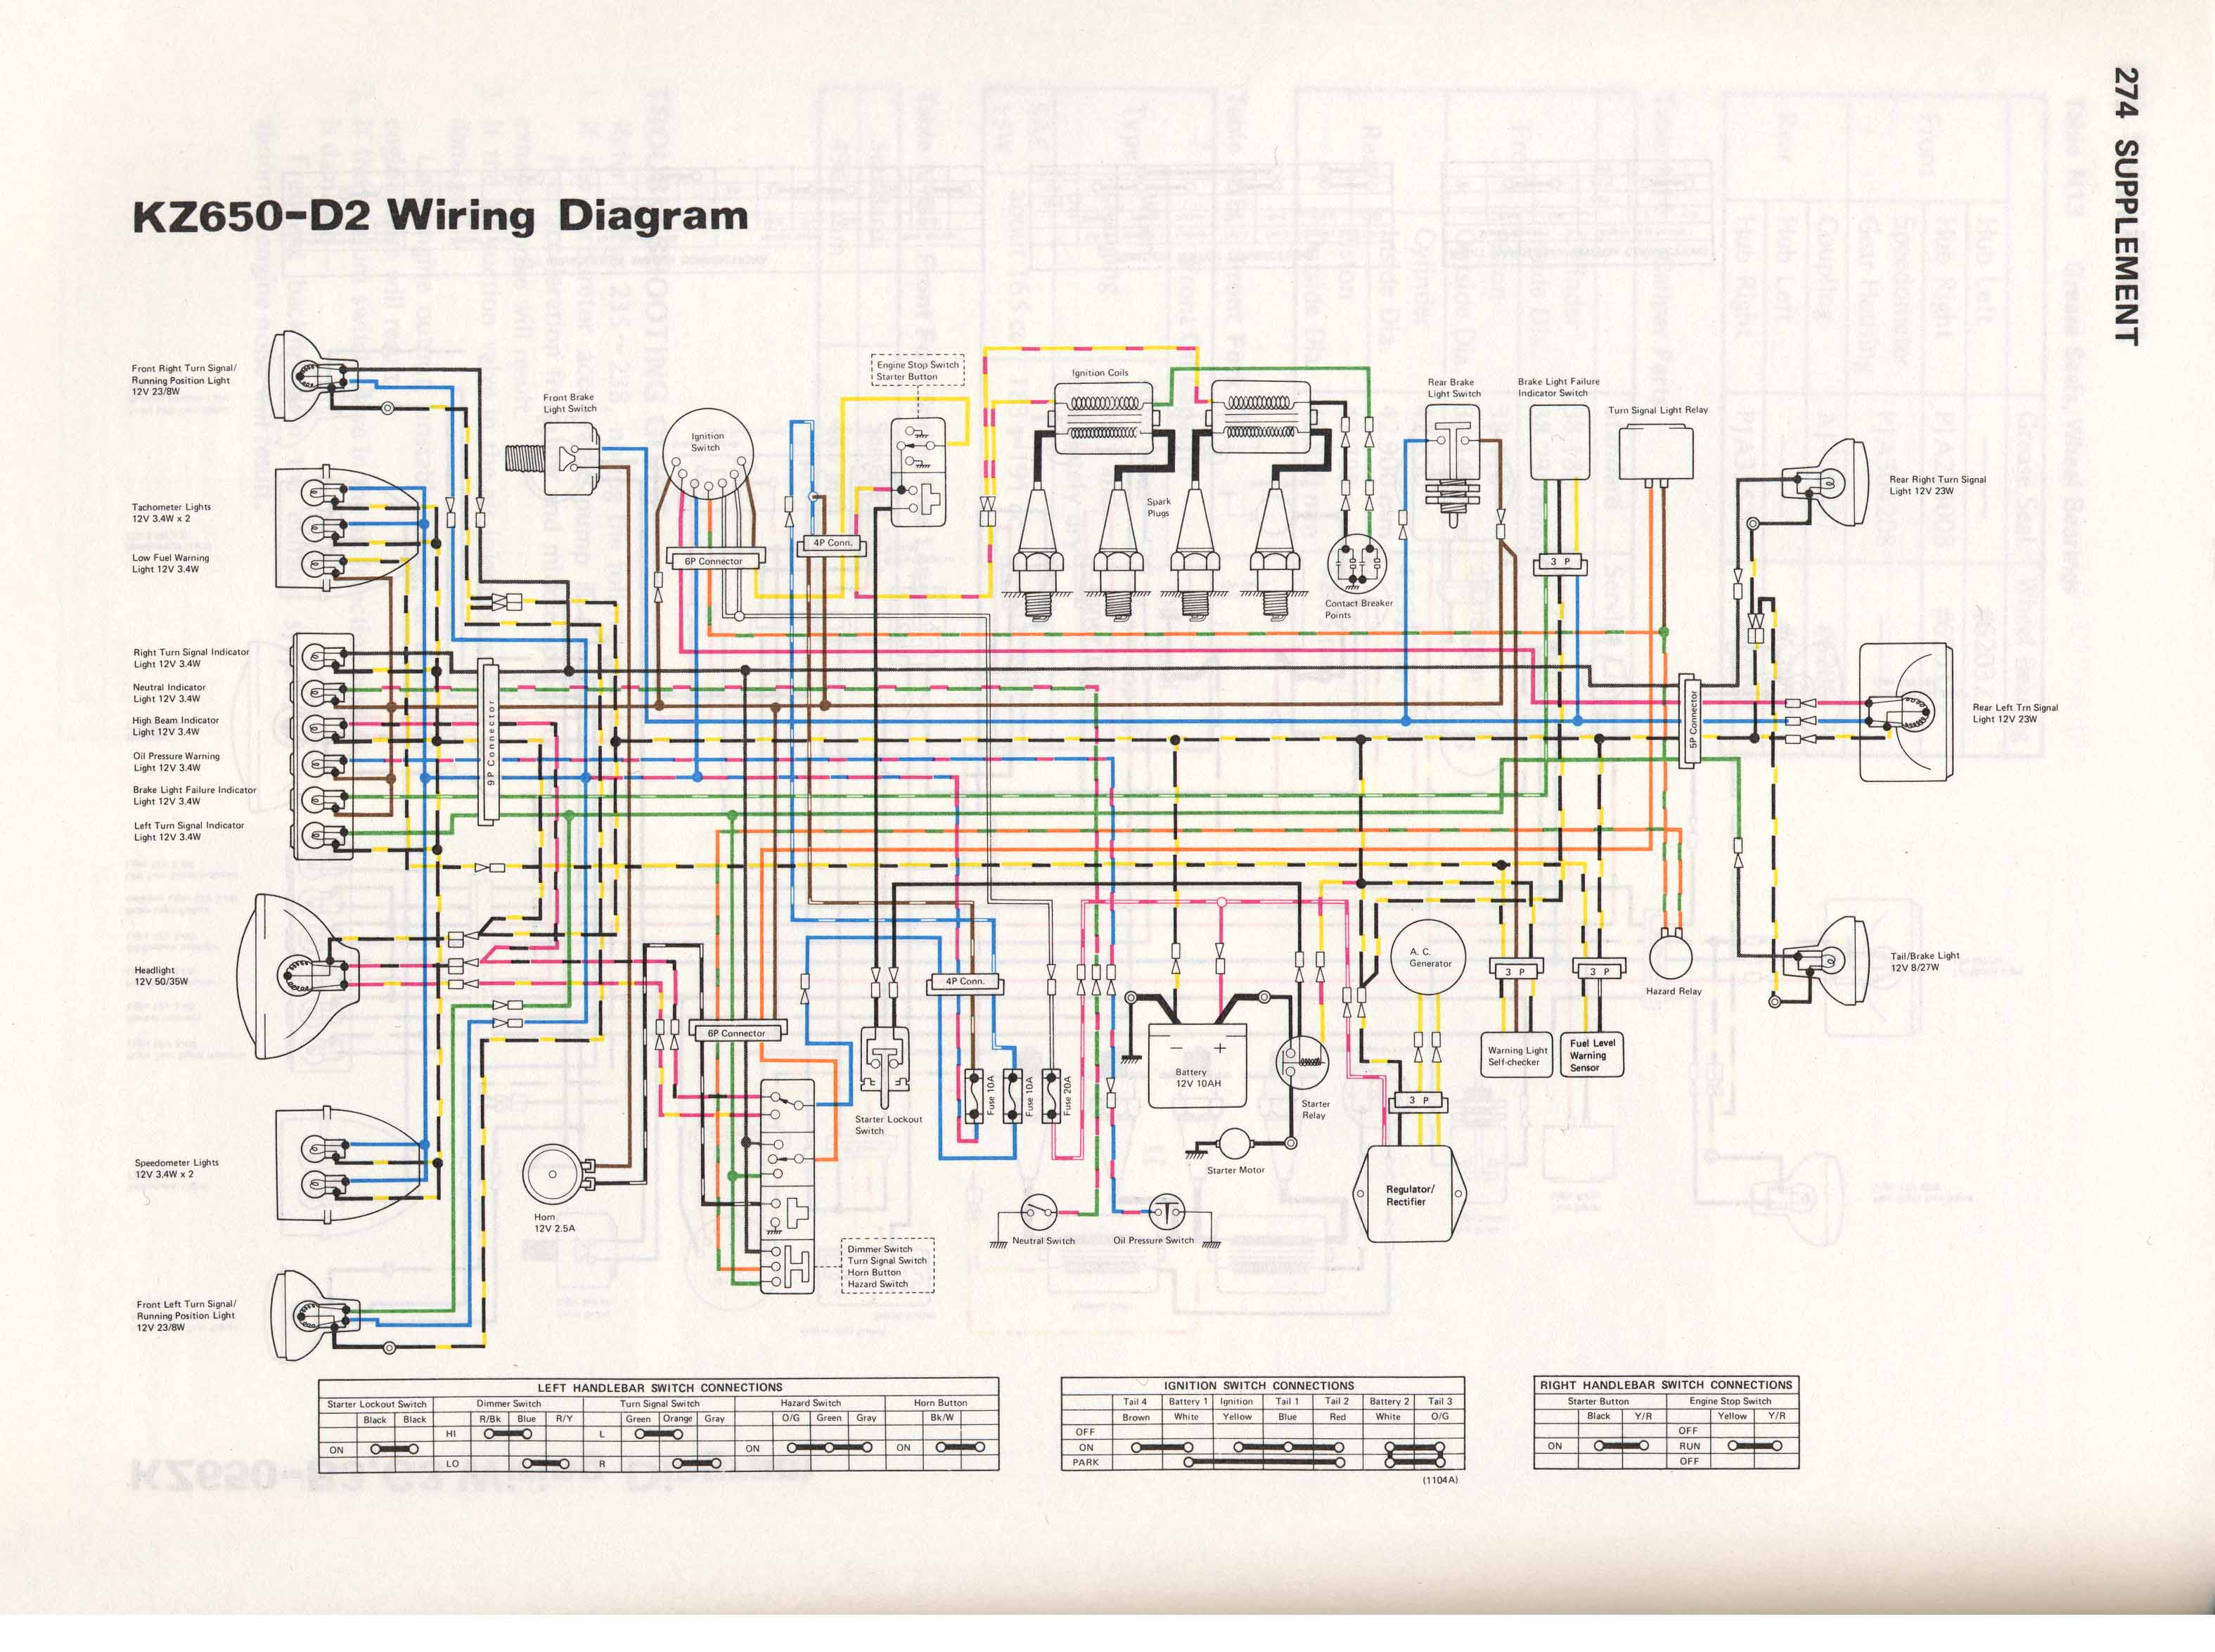 KZ650 D2 kawasaki ltd 550 wiring diagram wiring diagram simonand 1980 kz650 wiring diagram at alyssarenee.co